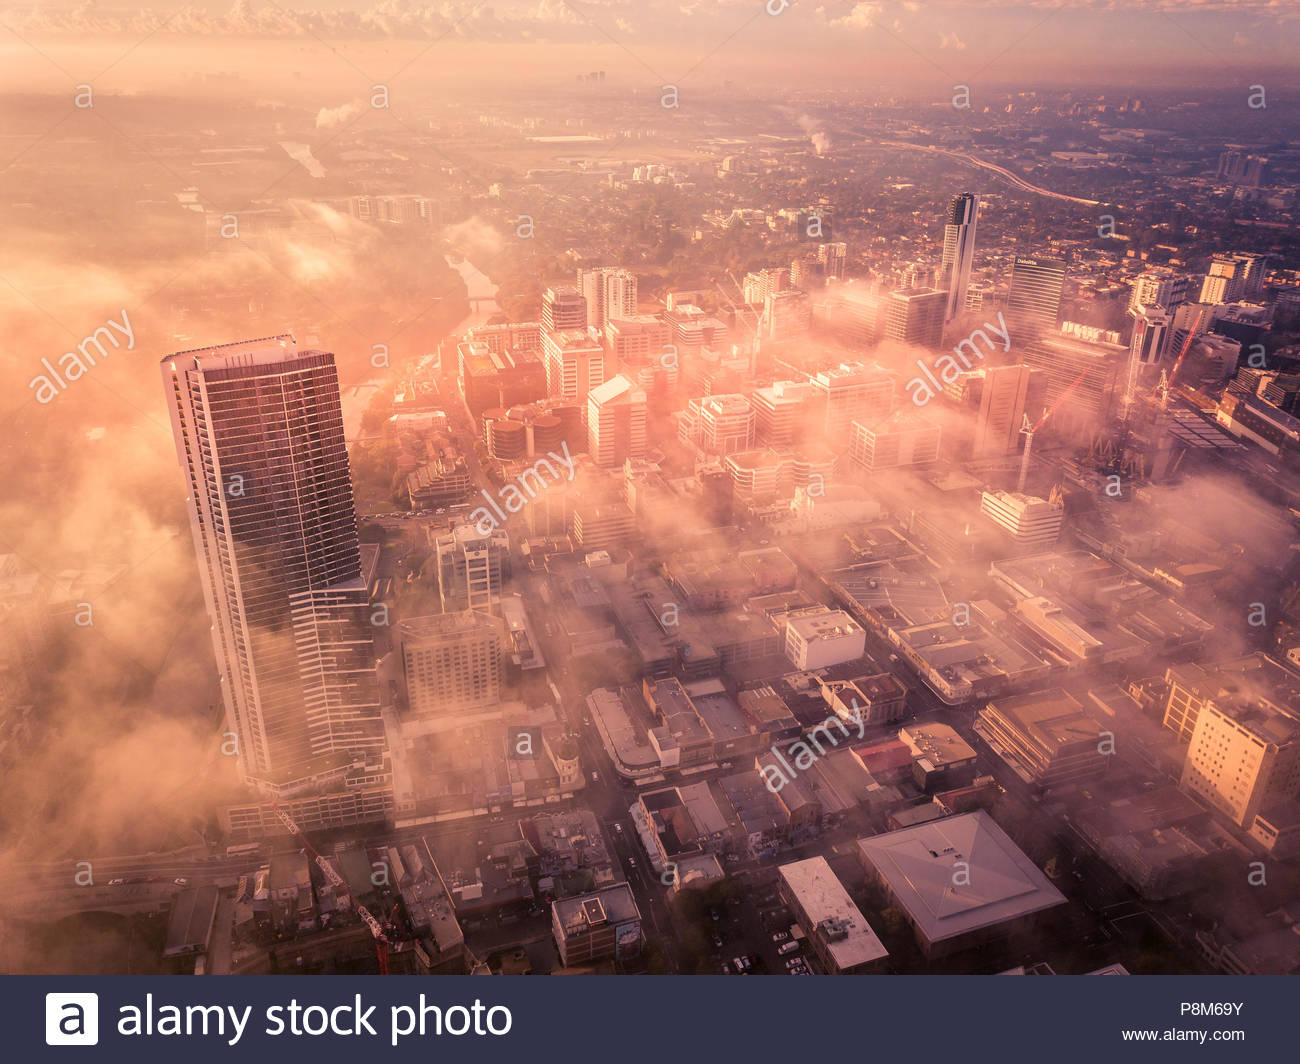 Drone aerial view of a misty foggy morning in a bustling downtown central business district. Urban city setting at dawn. - Stock Image